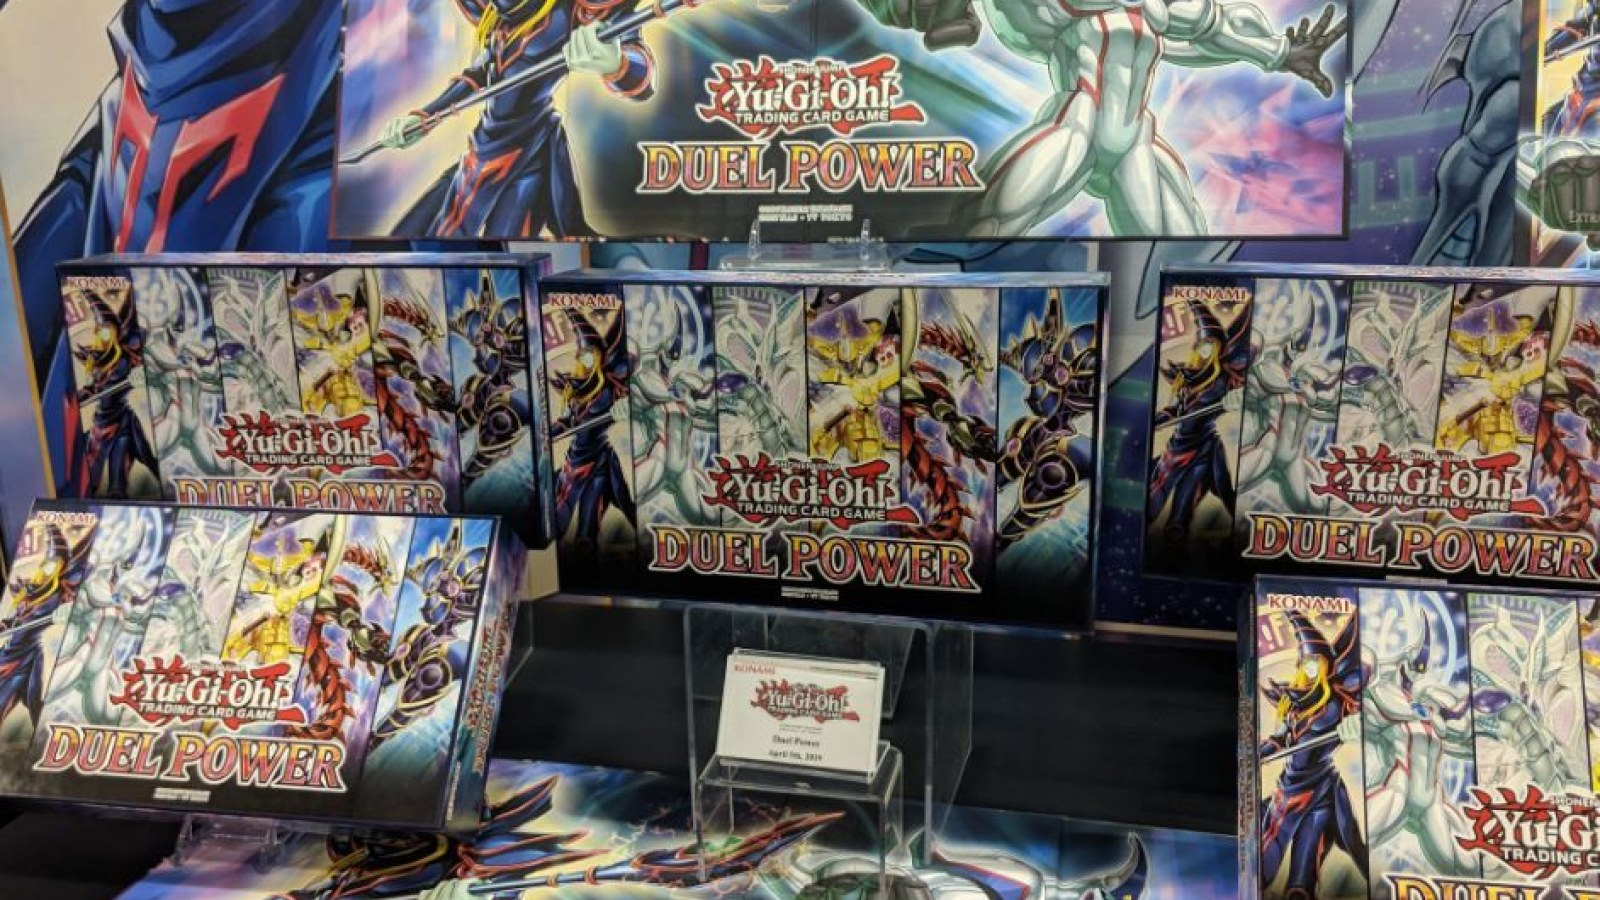 Toy Fair 2019: 'Yu-Gi-Oh!' Fans Have a Lot to Look Forward